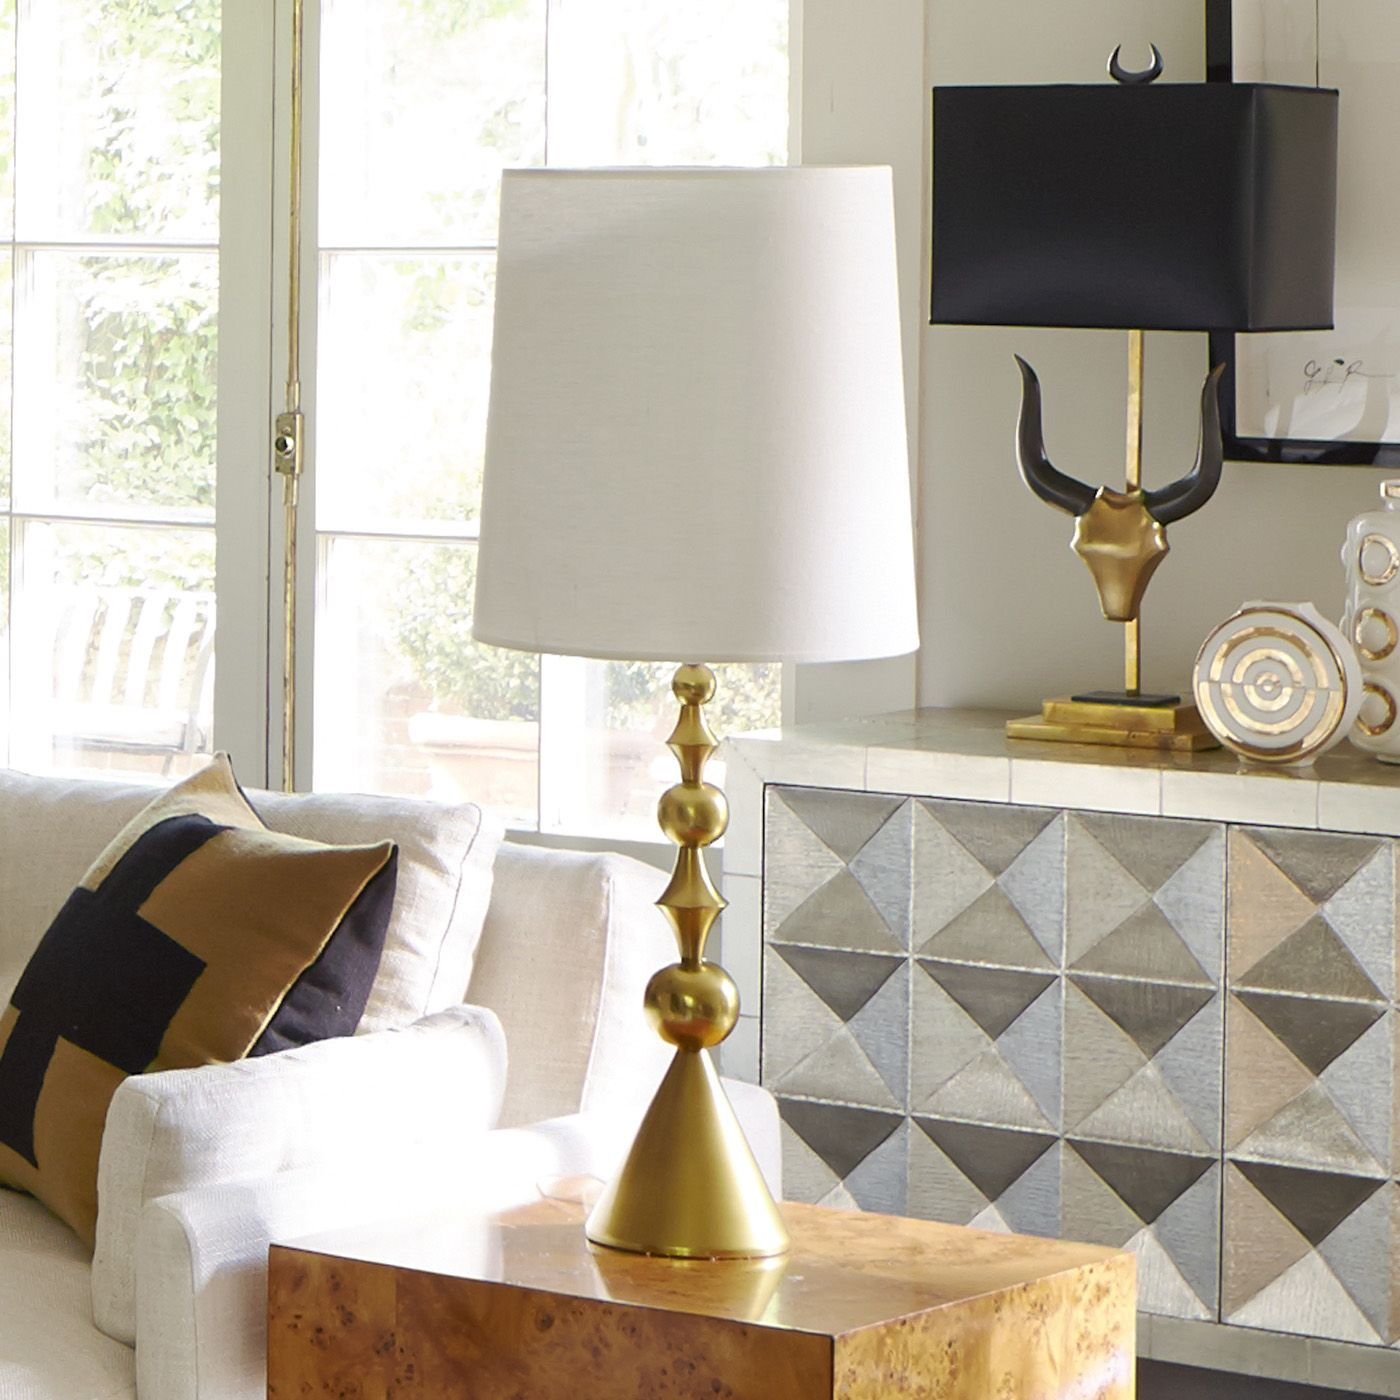 Currey And Company Toronto: Jonathan Adler, Sitting Rooms And